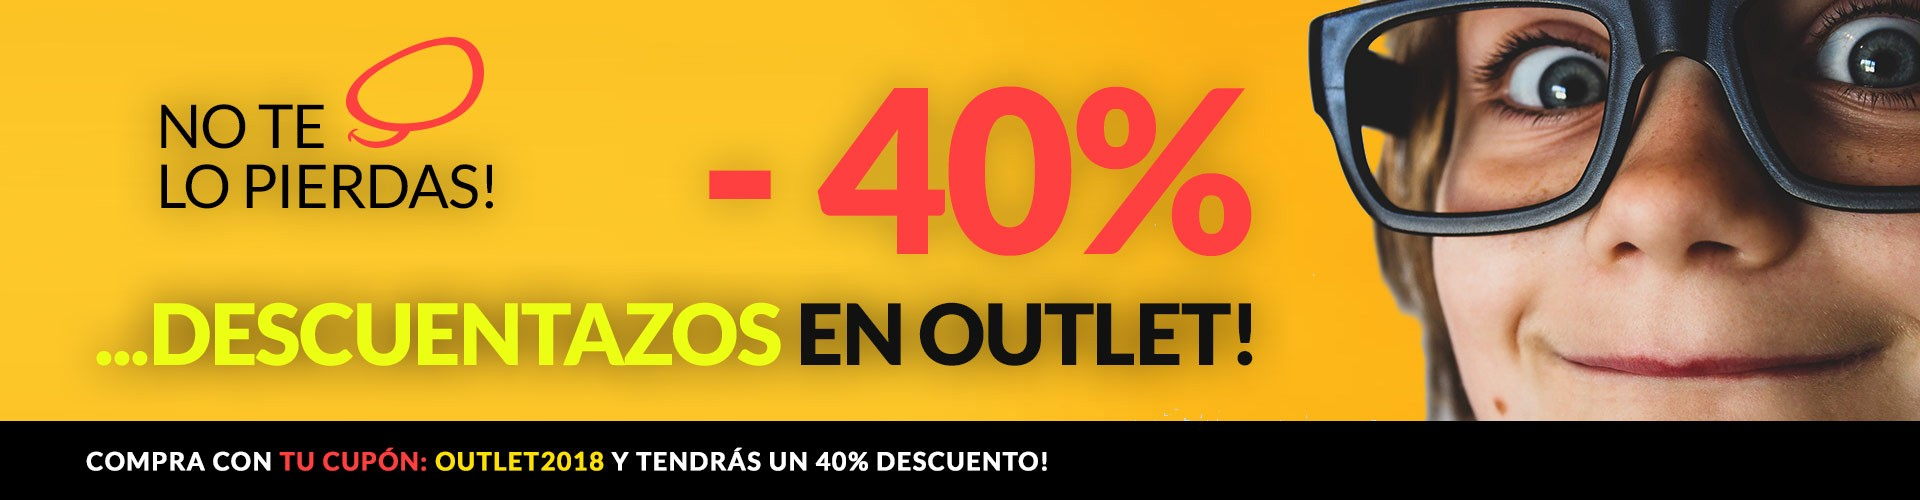 Outlet -40% CON TU CUPÓN: OUTLET2018